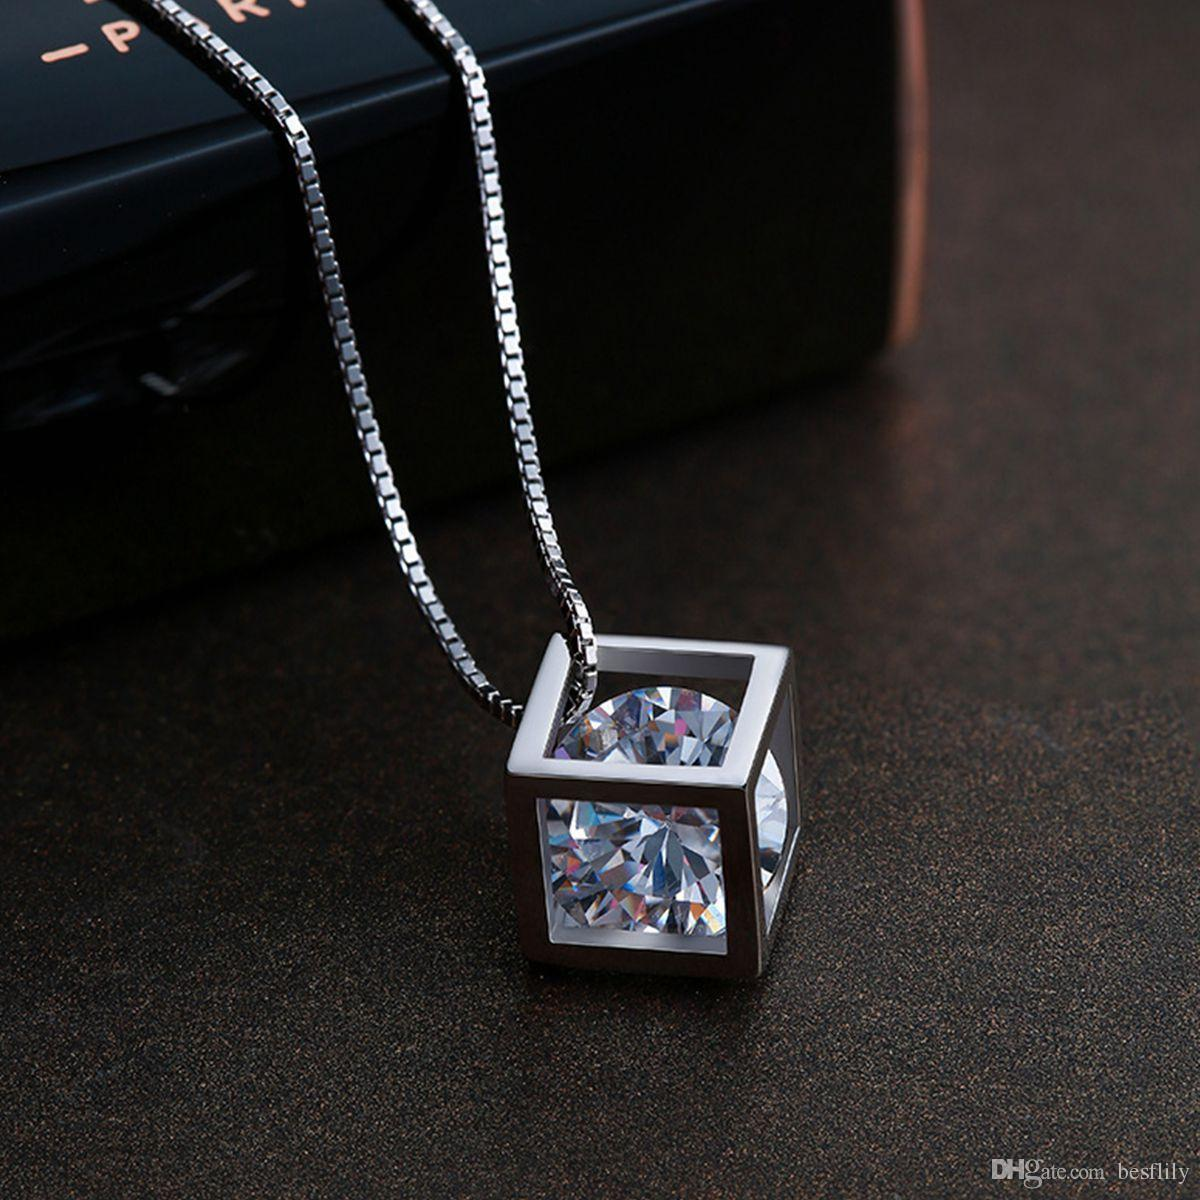 Women Necklaces Fashion Jewelry 925 Sterling Silver Love Magic Cube Sparkle Cubic Zirconia Crystal Pendant Necklace 18inch Box Chain